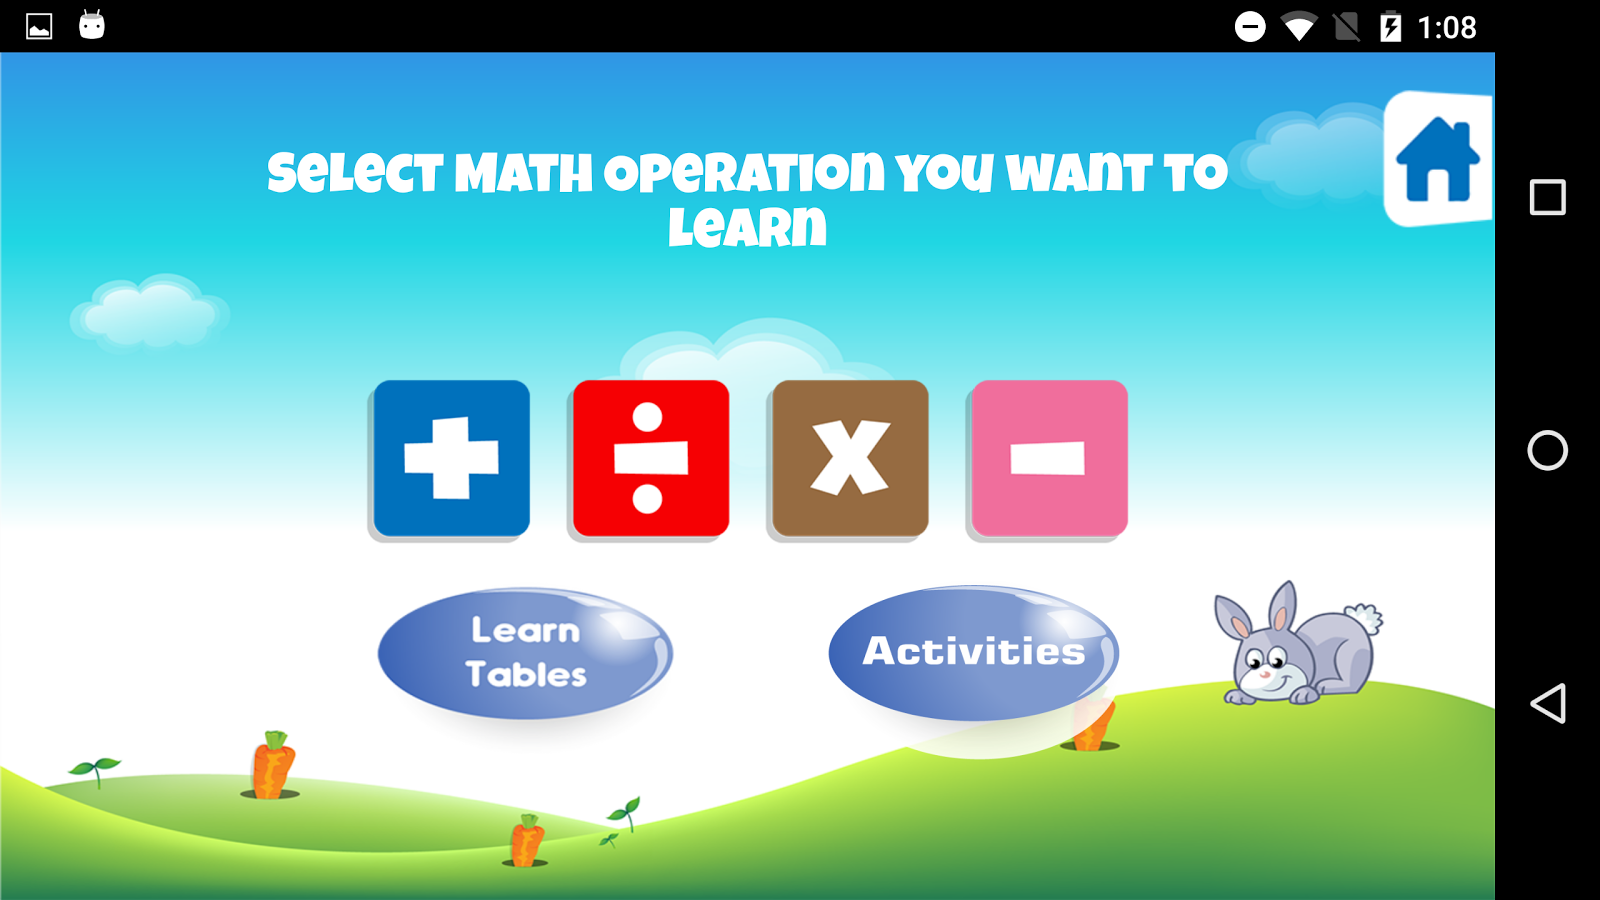 Maths training for kids android apps on google play for West mathi best item